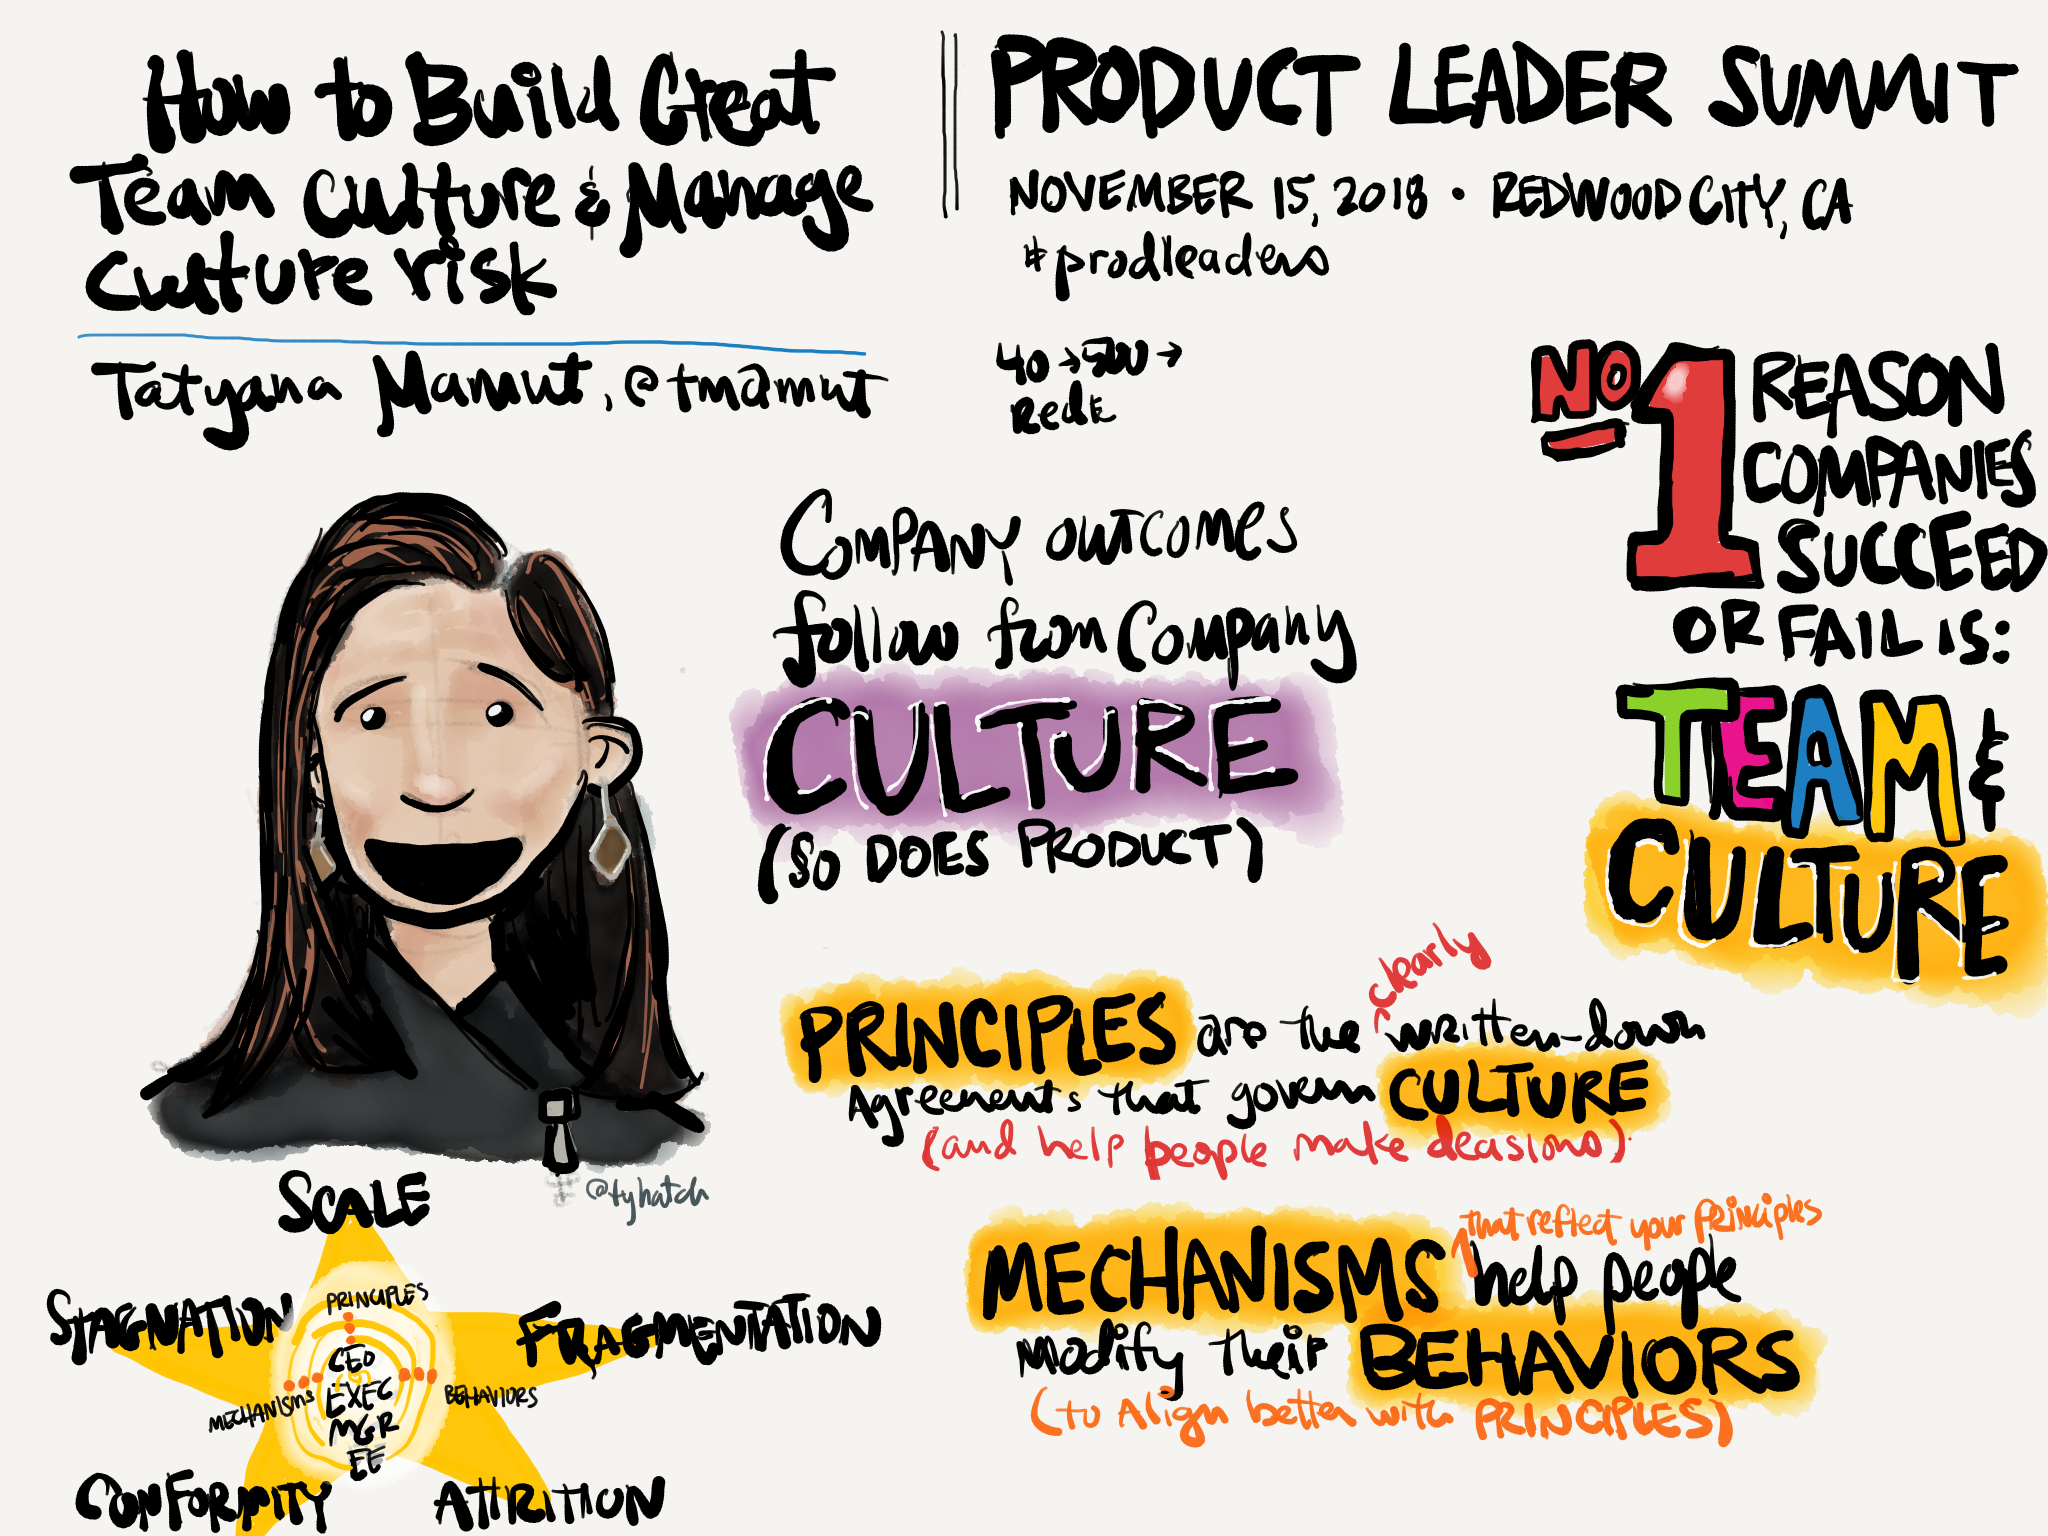 Tatyana Mamut workshop: How to Build Great Team Culture & Manage Culture Risk